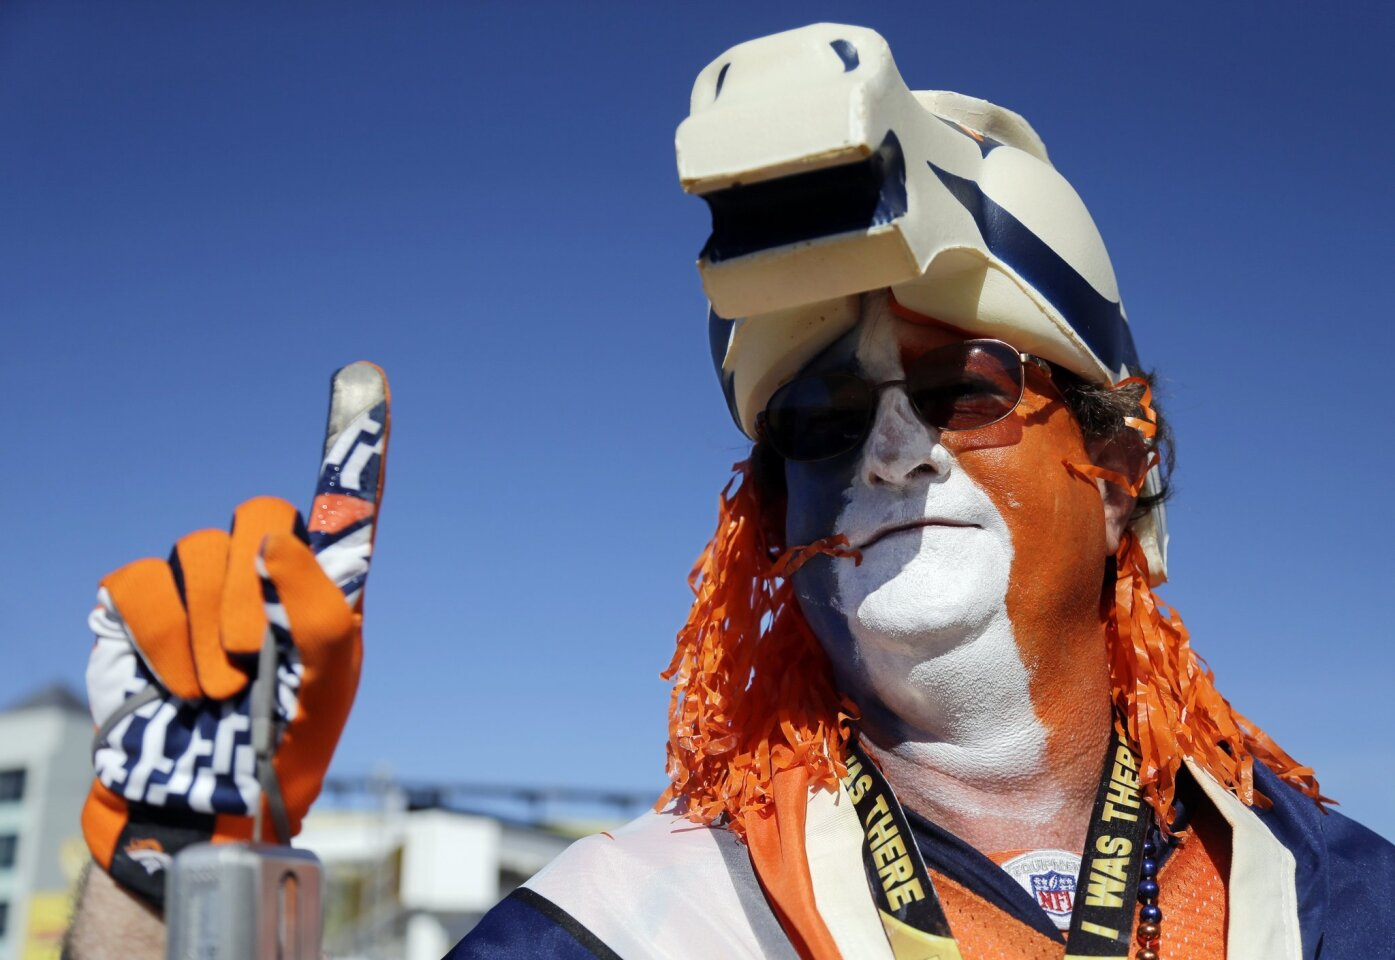 Dwayme Fox poses before the NFL Super Bowl 50 football game between the Denver Broncos and the Carolina Panthers, Sunday, Feb. 7, 2016, in Santa Clara, Calif. (AP Photo/Julie Jacobson)